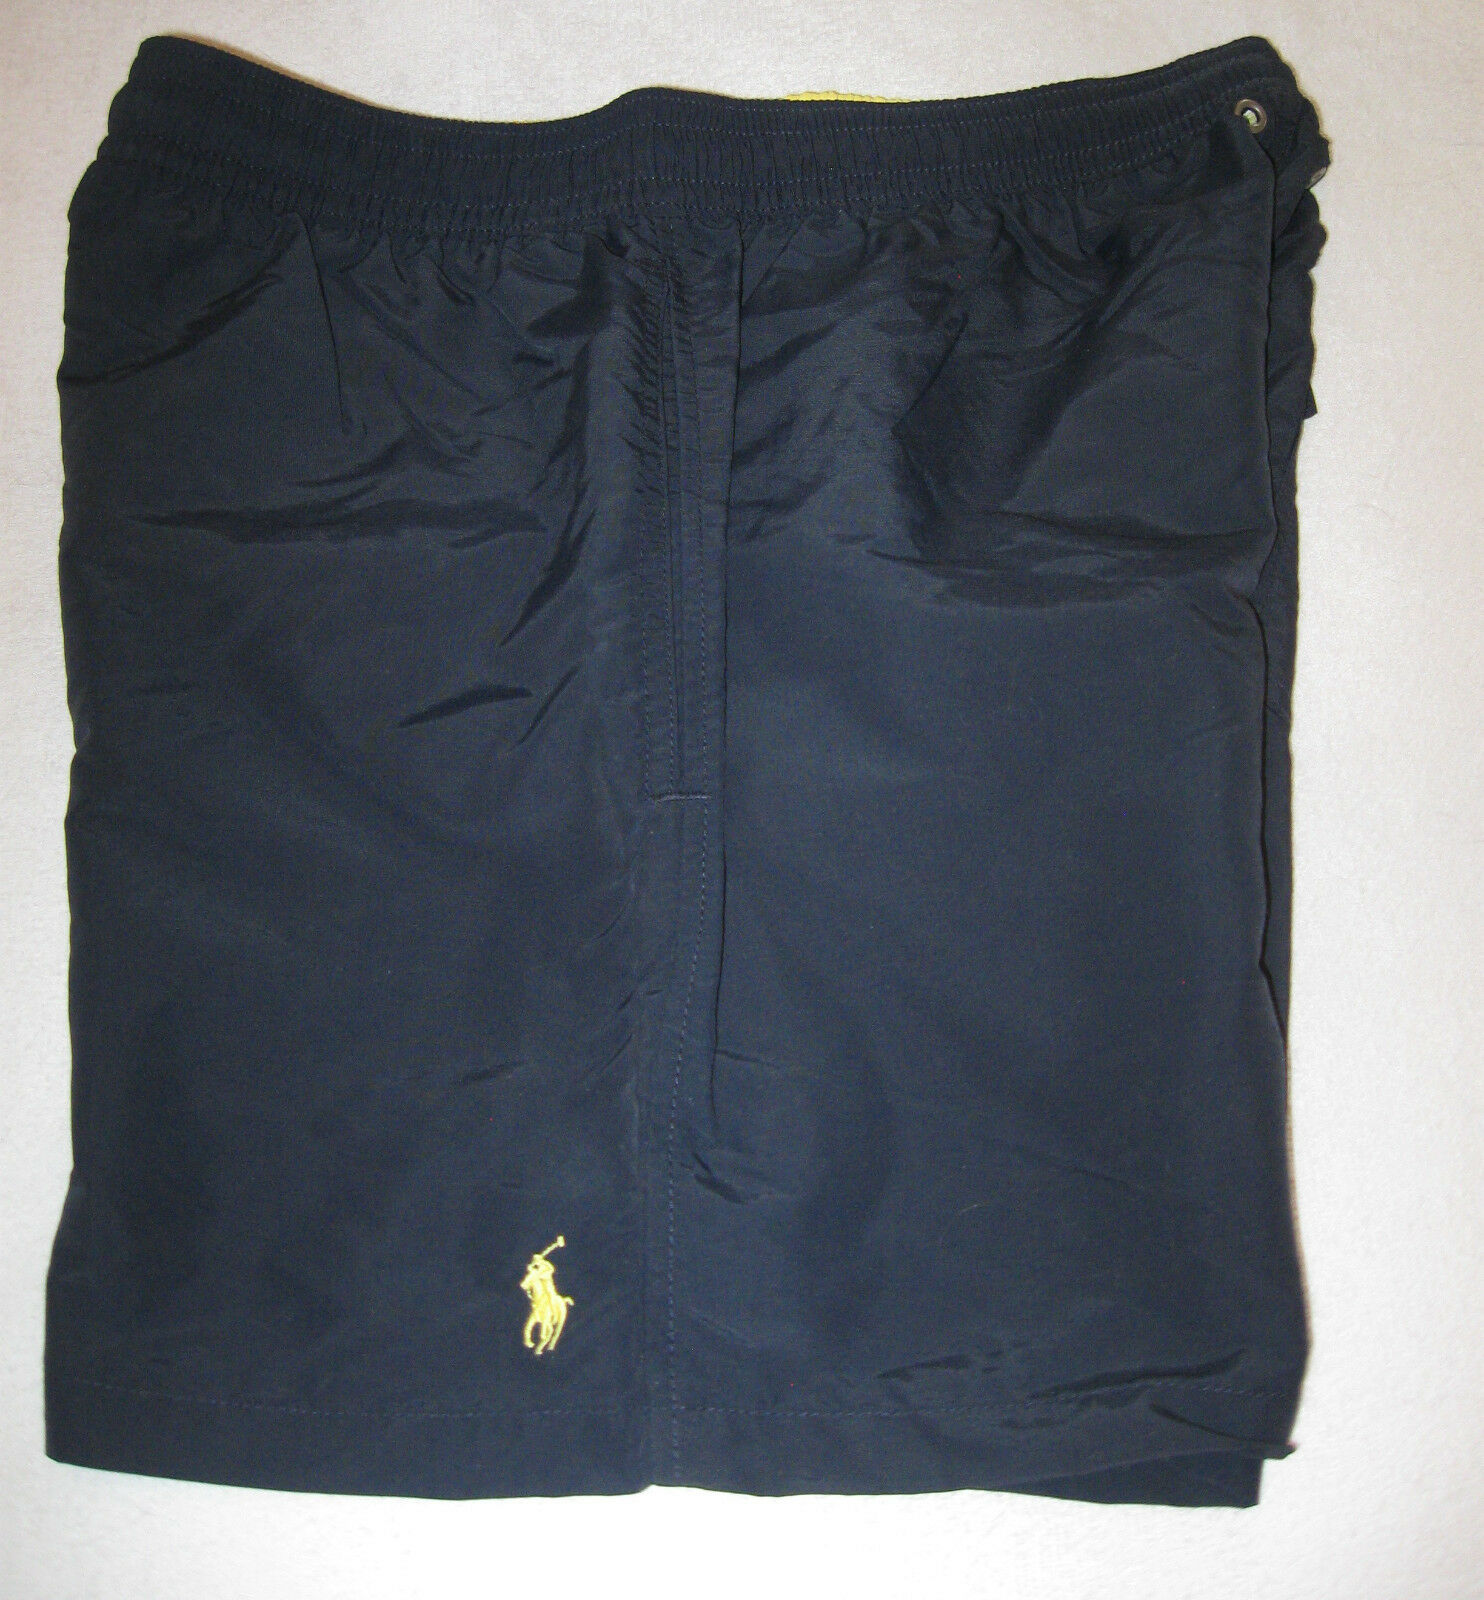 POLO Ralph Lauren Mens Swim Trunks NWT S, M, L, XXL - Navy bluee, Yellow Pony